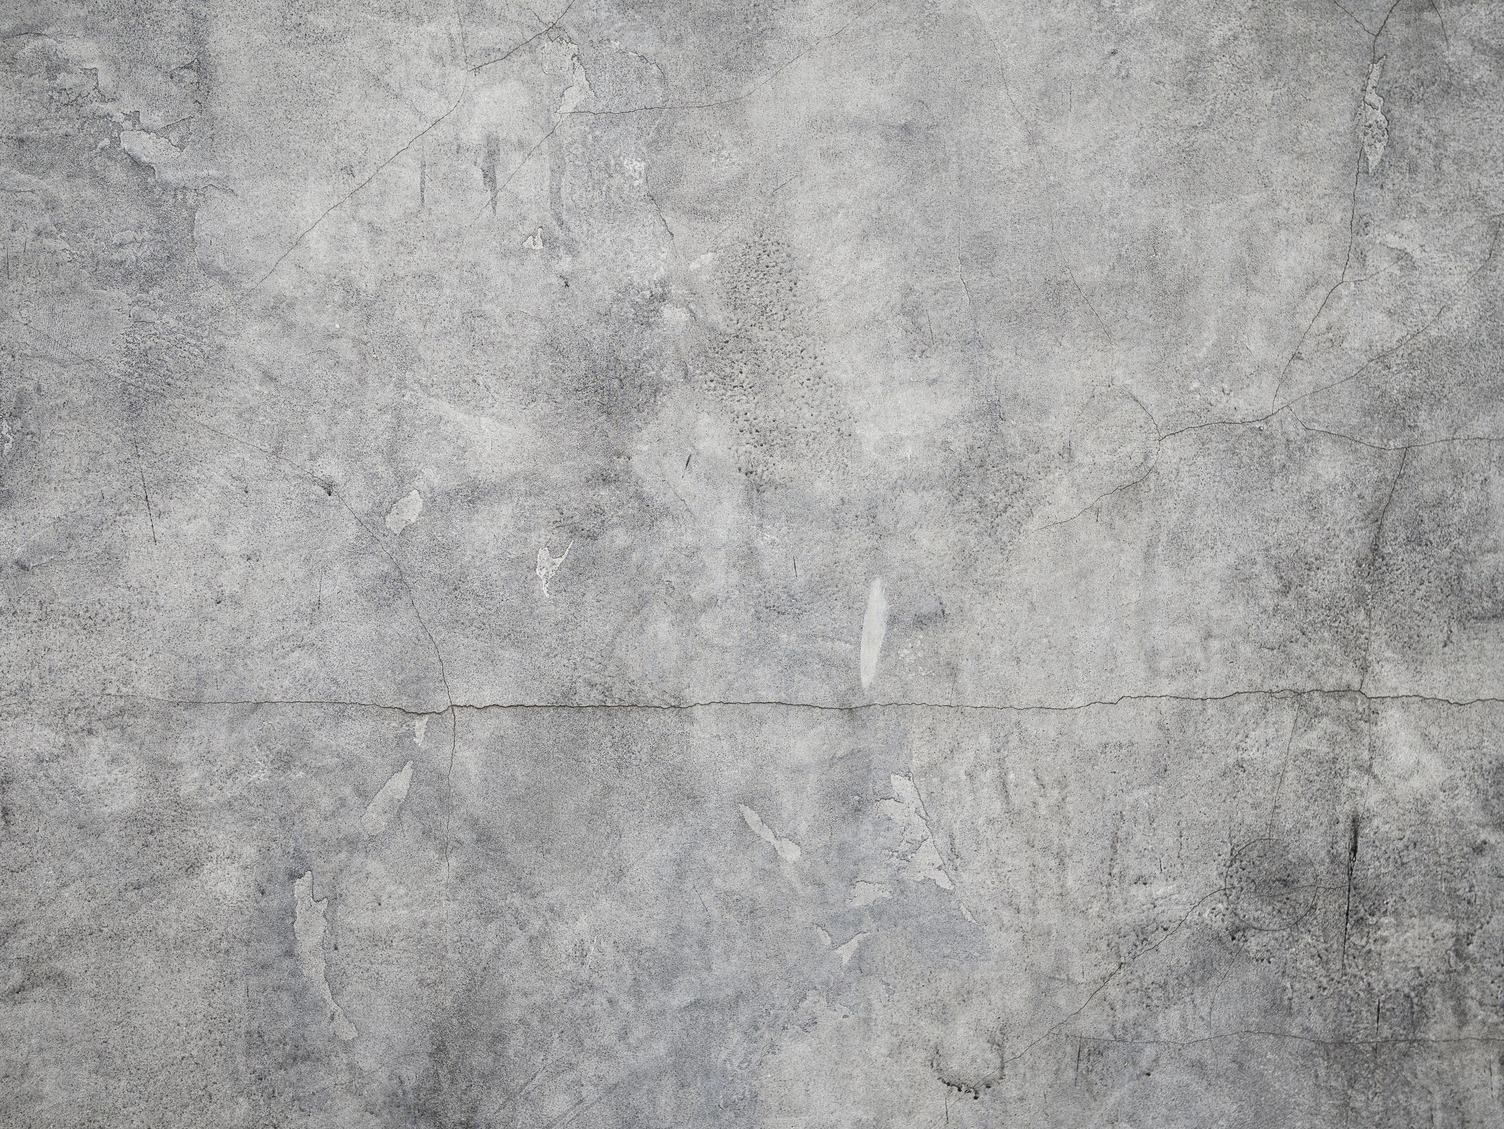 Old Gray Concrete Wall Texture Concrete Wall Texture Concrete Wall Concrete